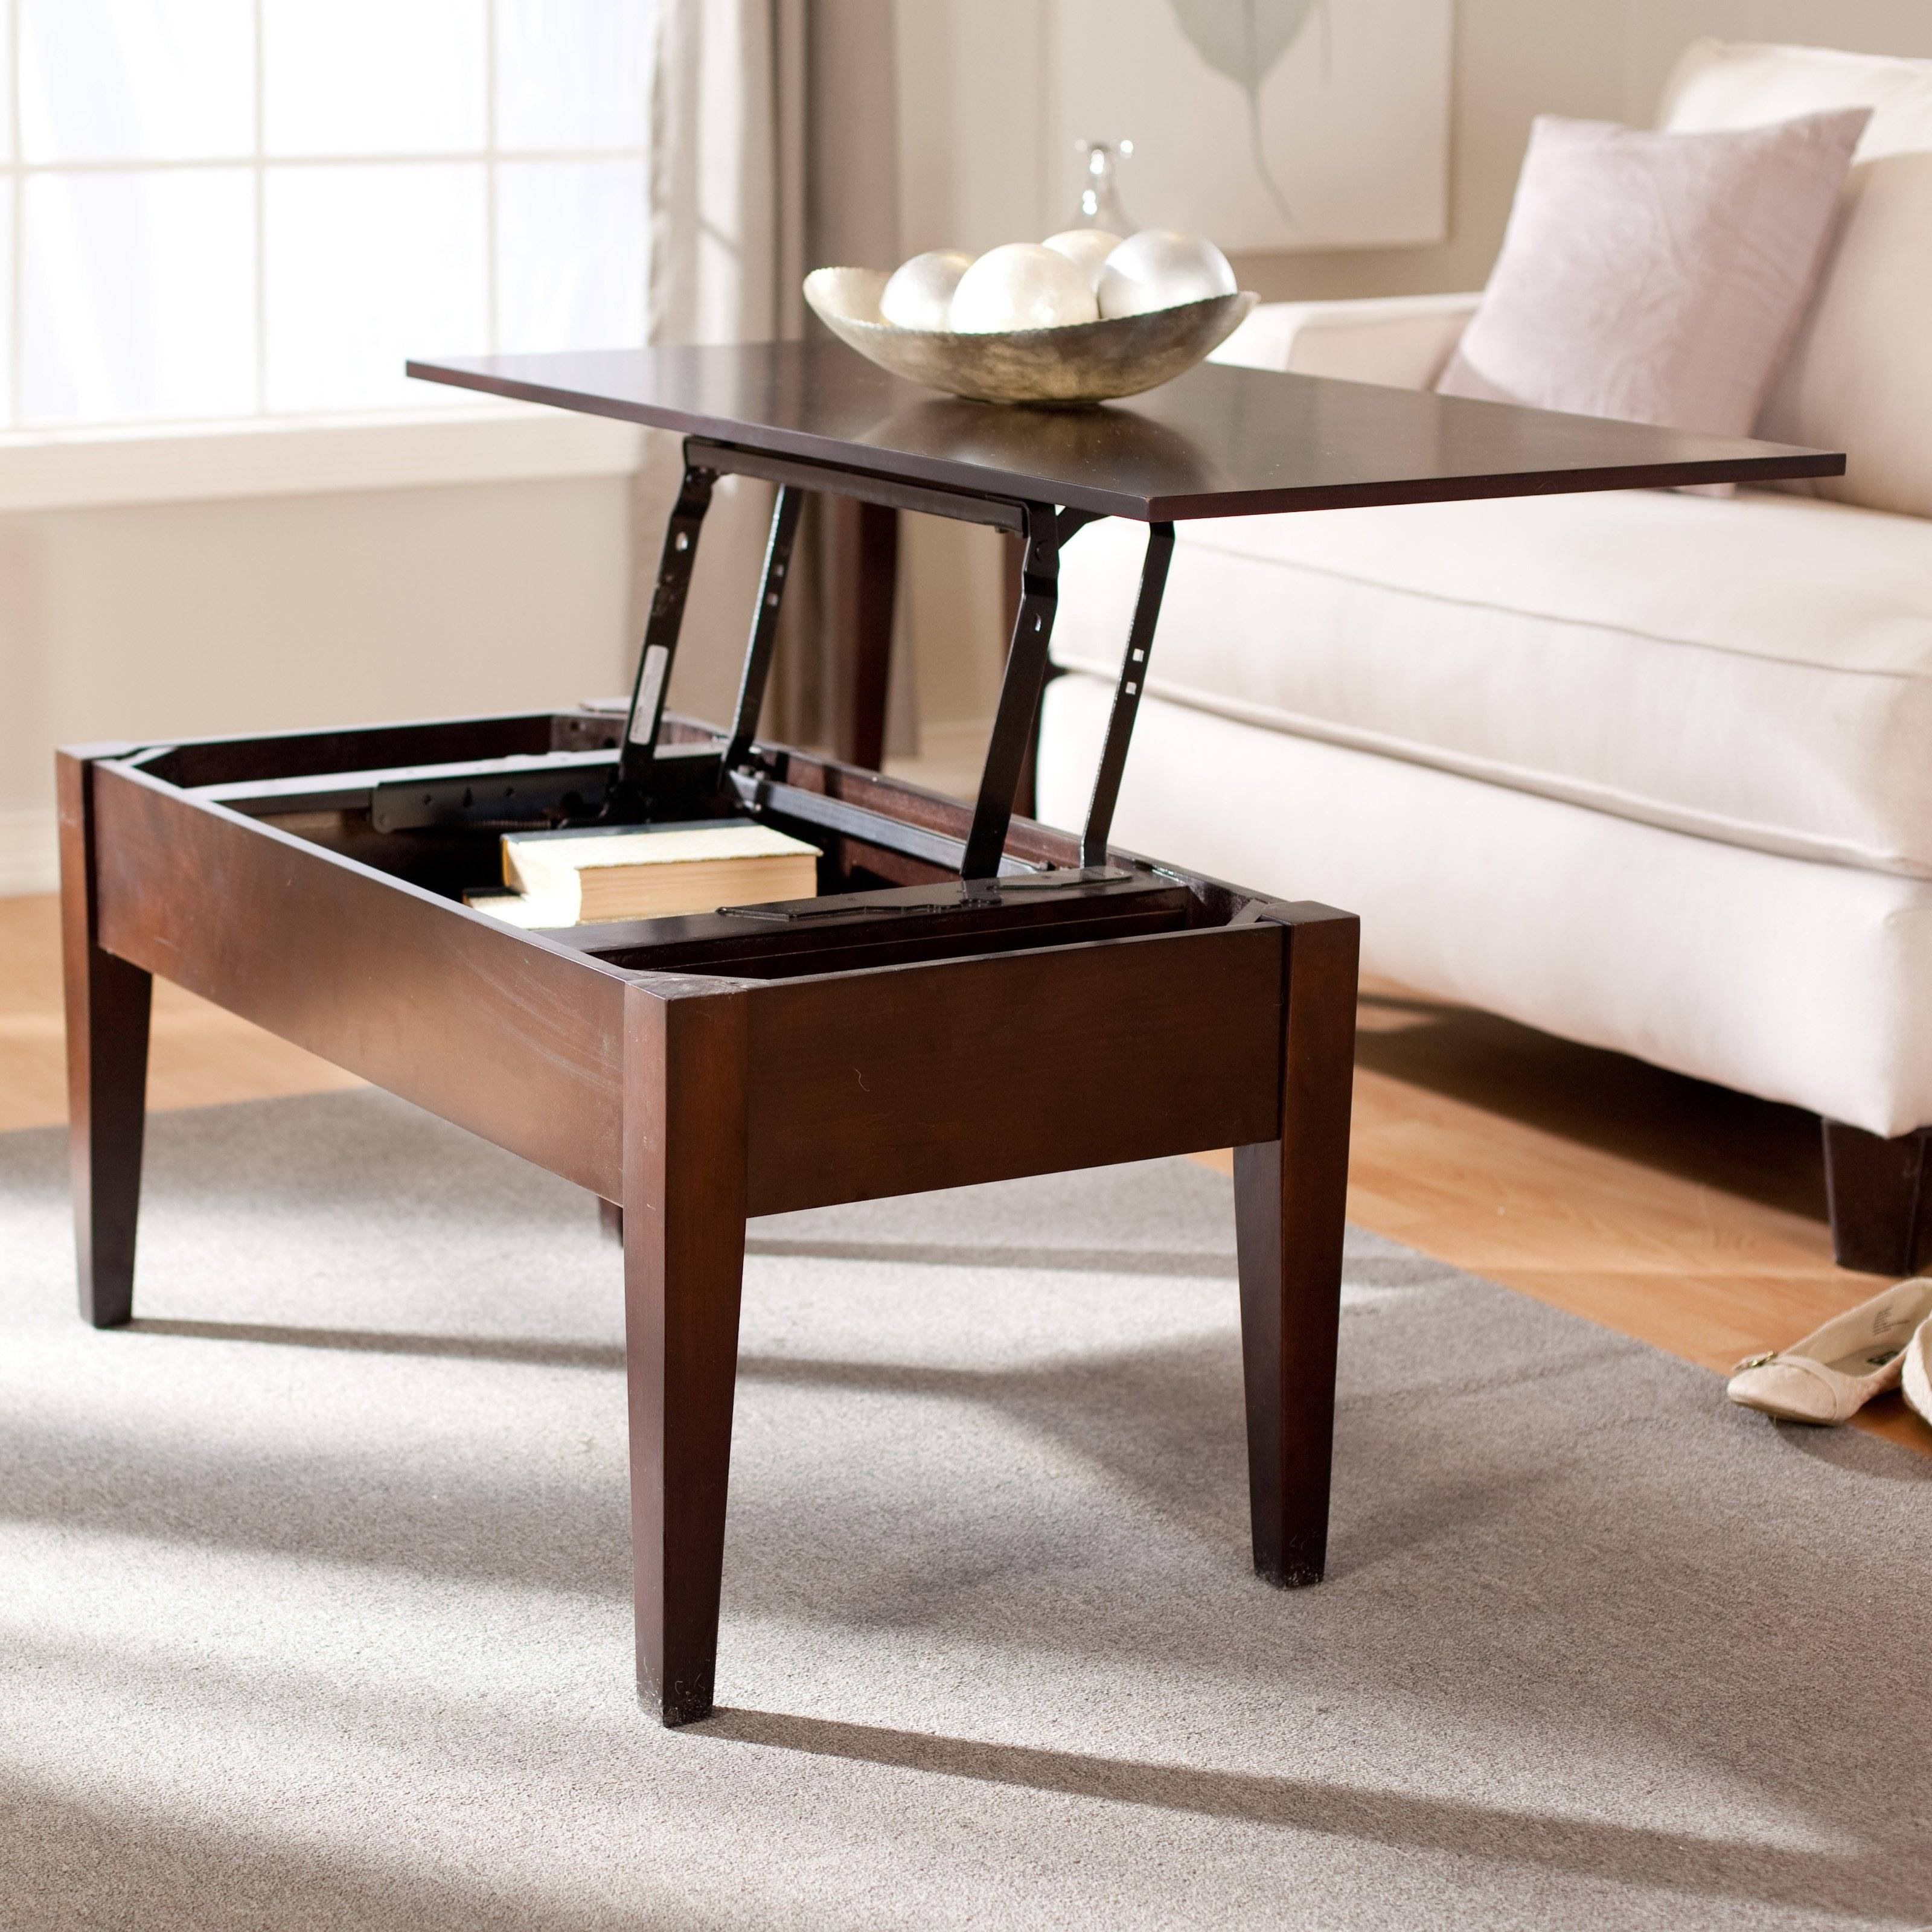 Turner Lift Top Coffee Table - Espresso | Hayneedle with regard to Coffee Tables With Lift Top and Storage (Image 13 of 14)